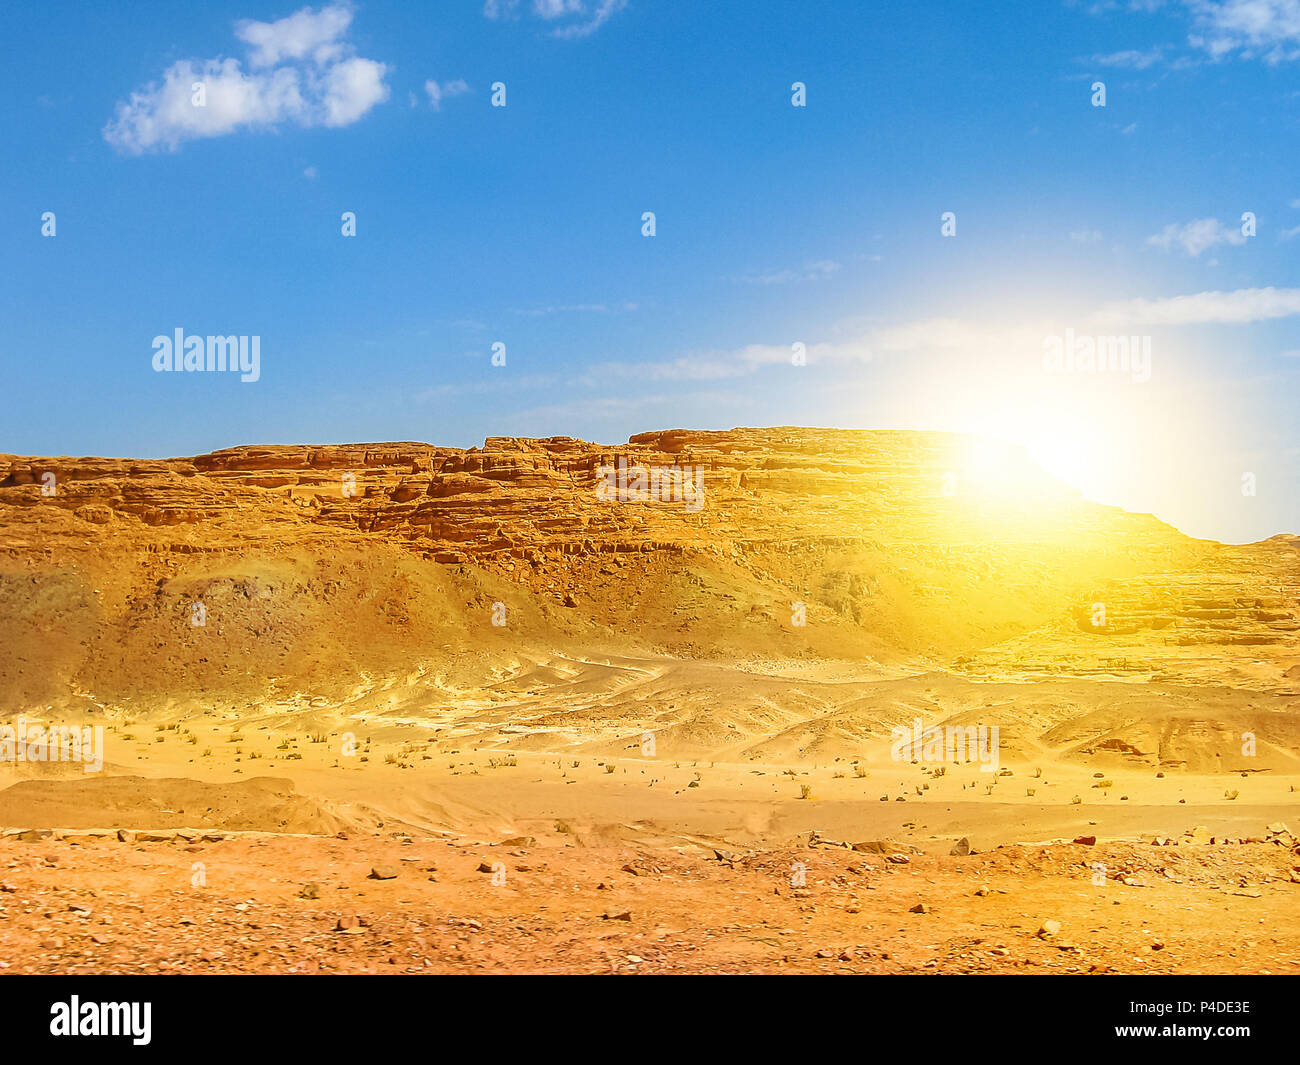 Desert background. Beautiful landscape of spectacular gorge of Colored Canyon, near Mount Sinai and Nuweiba, Sinai Peninsula in Egypt. Sunset light with copy space. - Stock Image